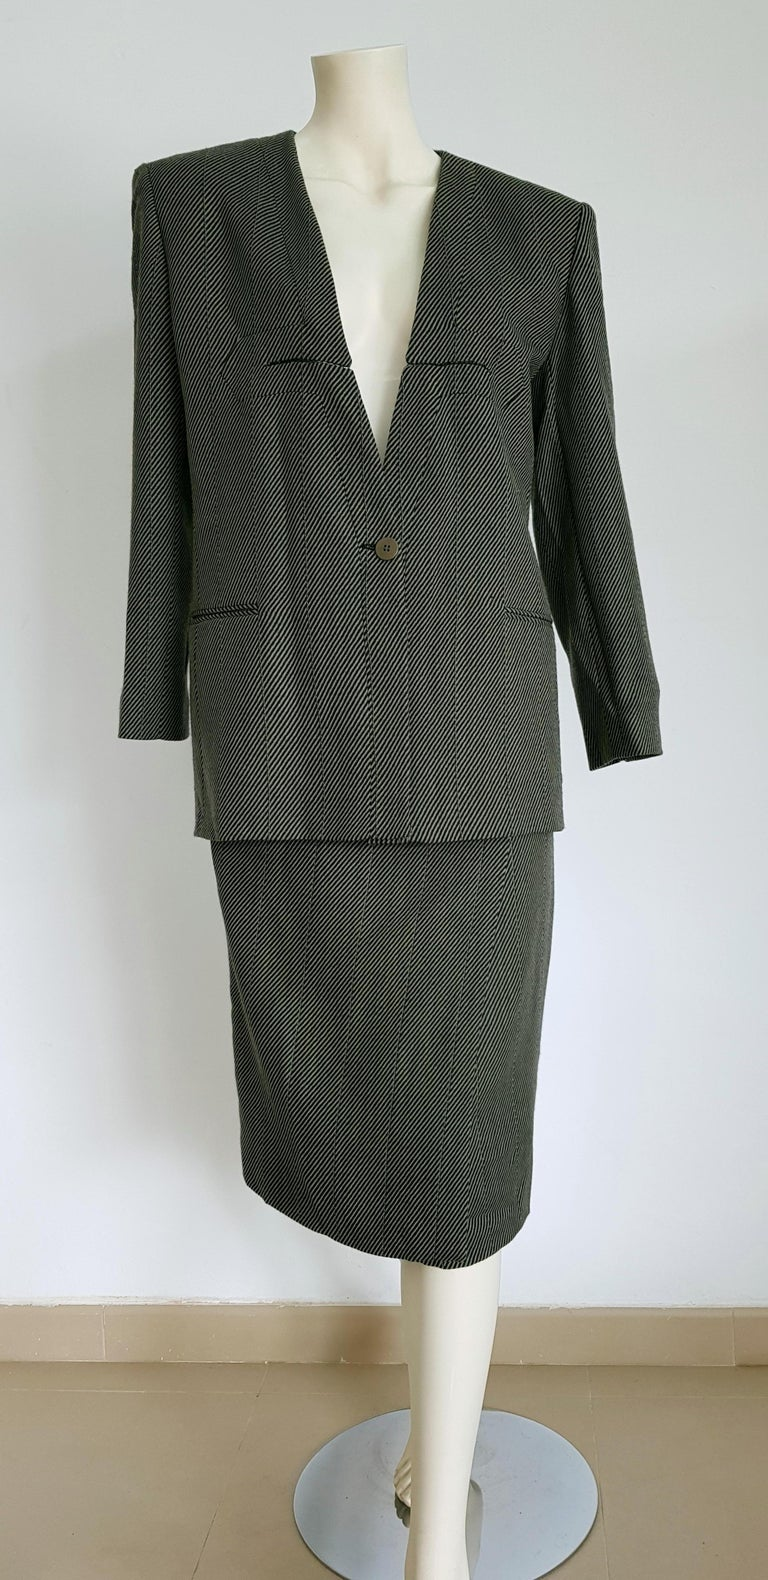 Giorgio ARMANI dark grey and light grey diagonal lines, jacket and skirt wool suit - Unworn, New.  SIZE: equivalent to about Small / Medium, please review approx measurements as follows in cm.  JACKET: lenght 75, chest underarm to underarm 50, bust